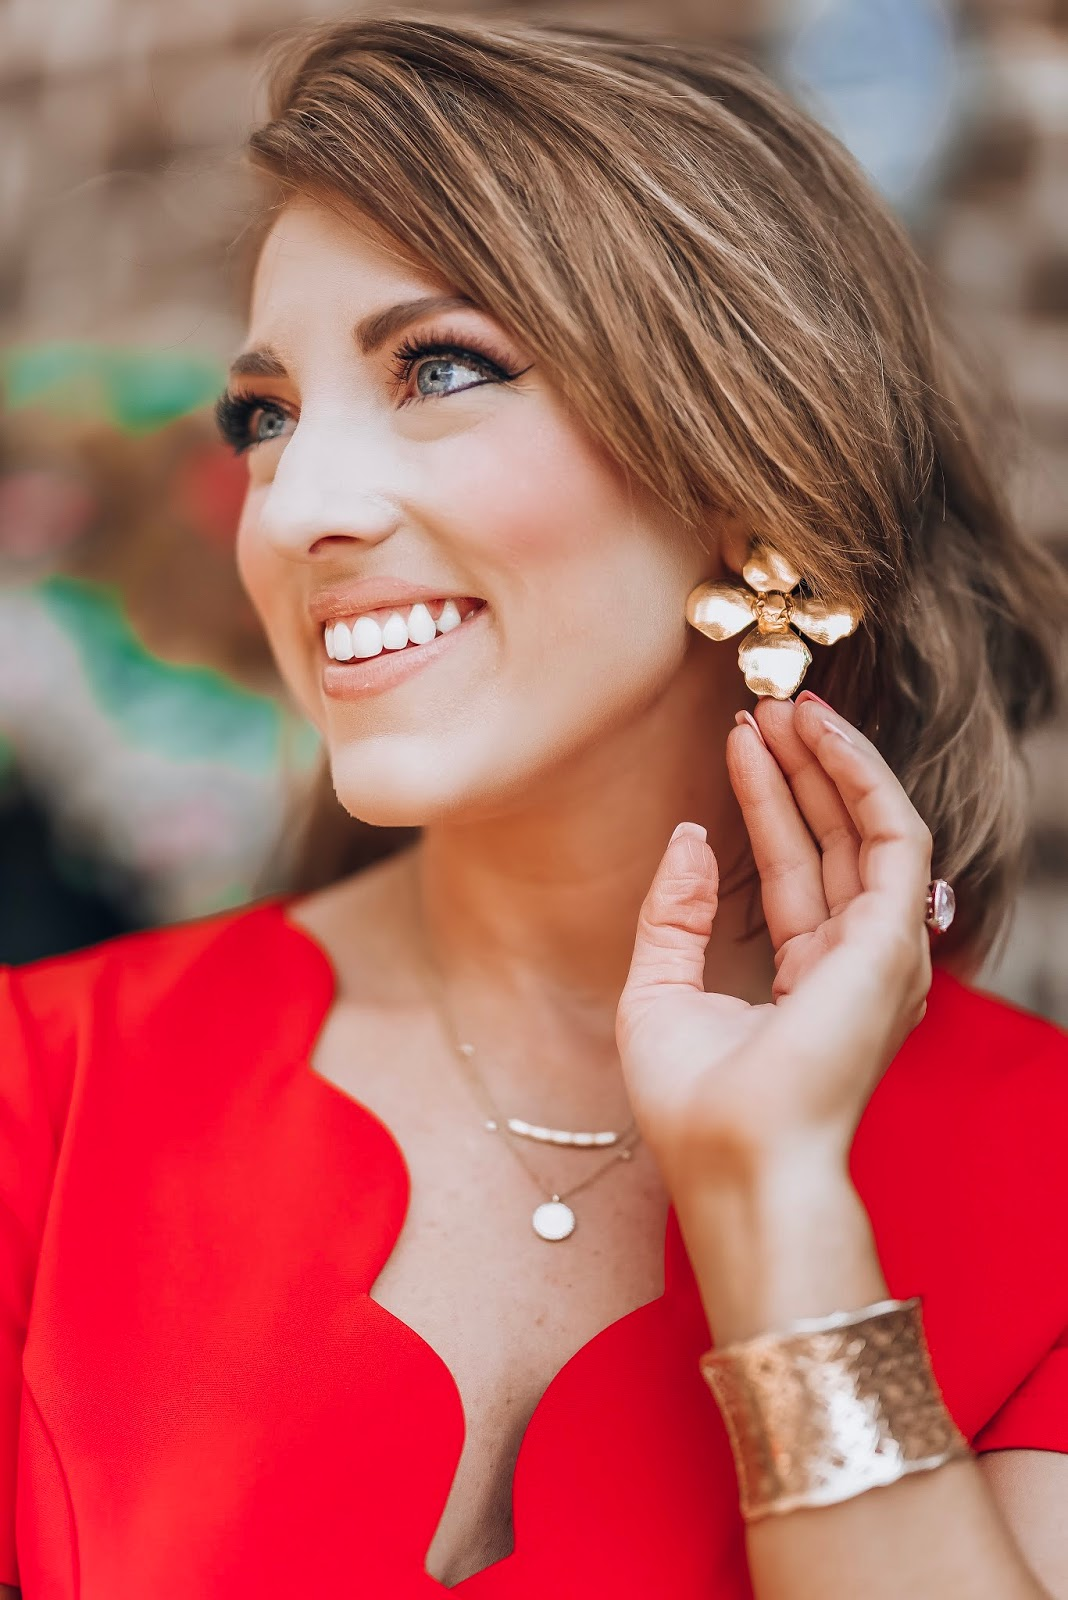 Under $60 Scallop Red Dress in Charleston + Lisi Lerch Blossom Earrings - Something Delightful Blog #springstyle